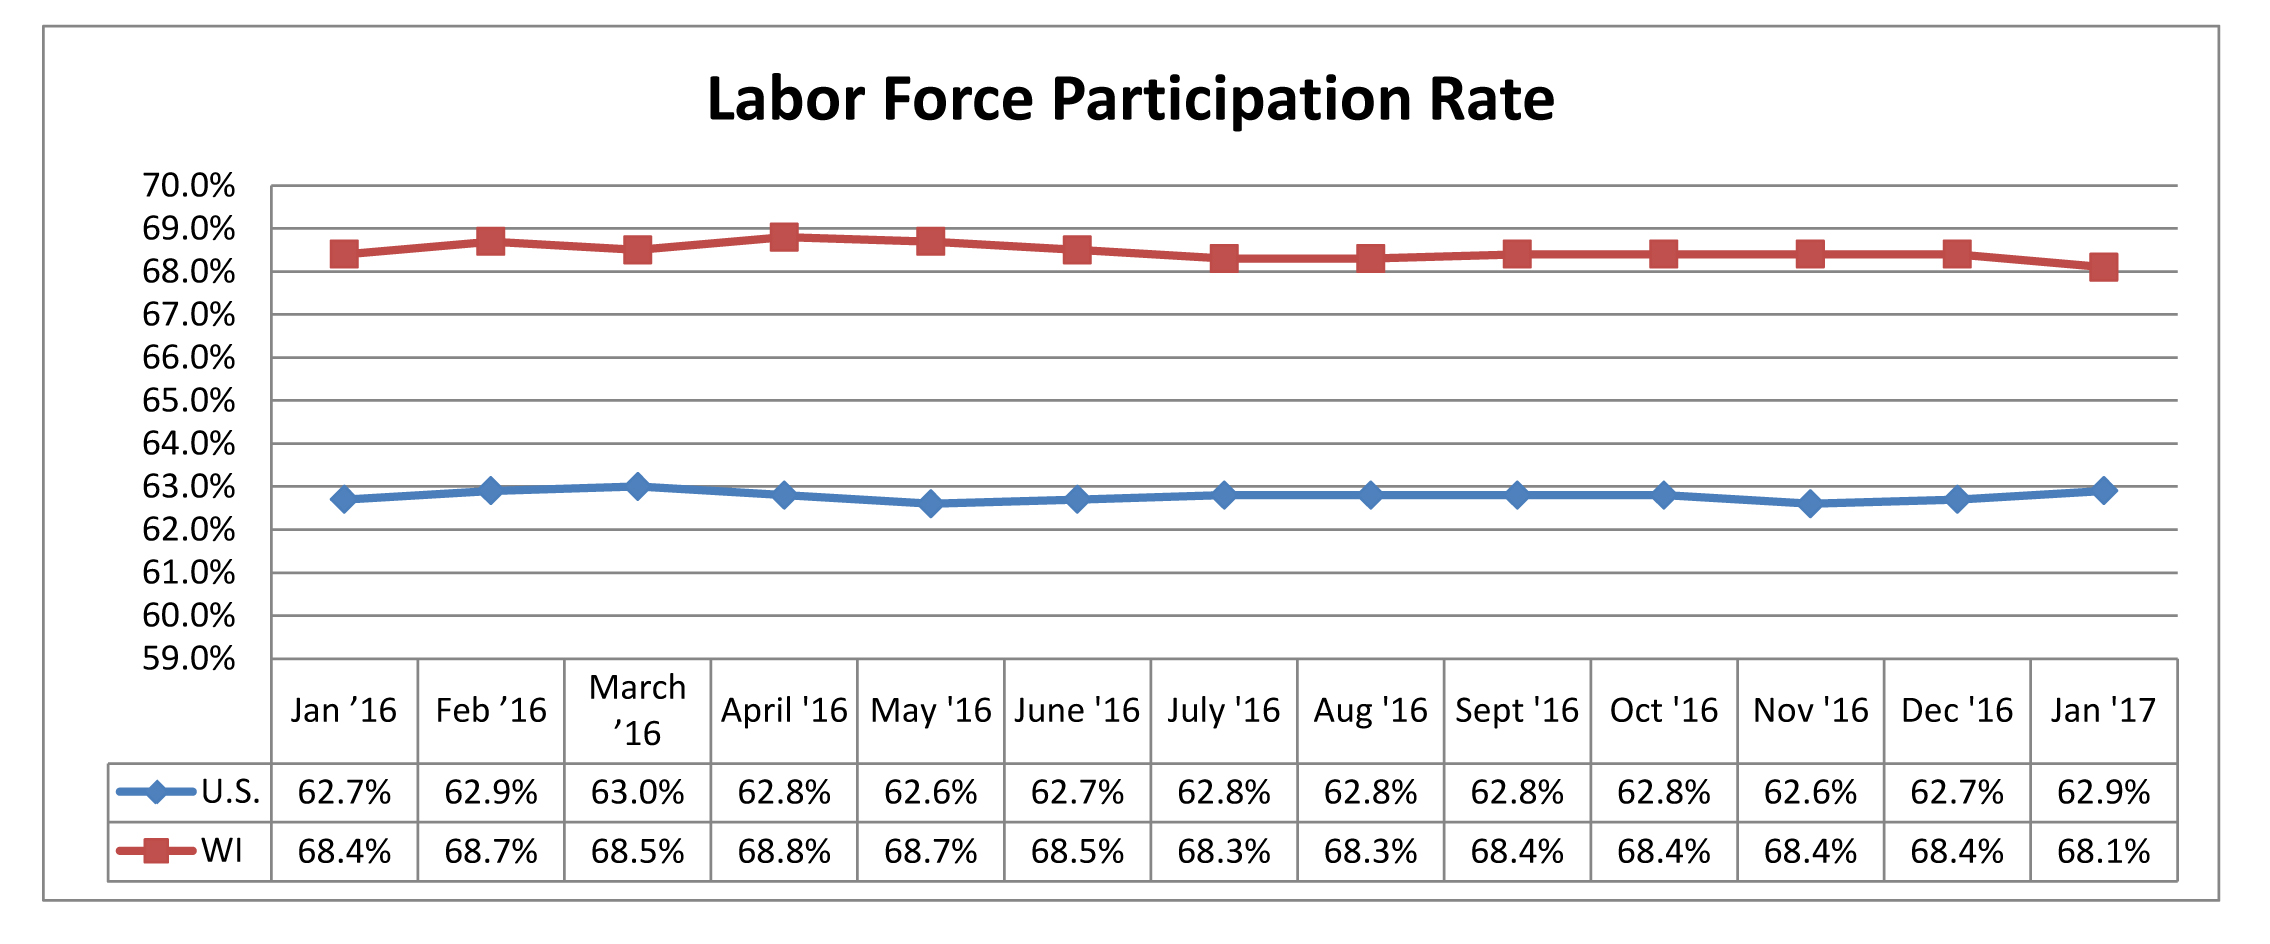 Labor Force Participation Rate January 2017